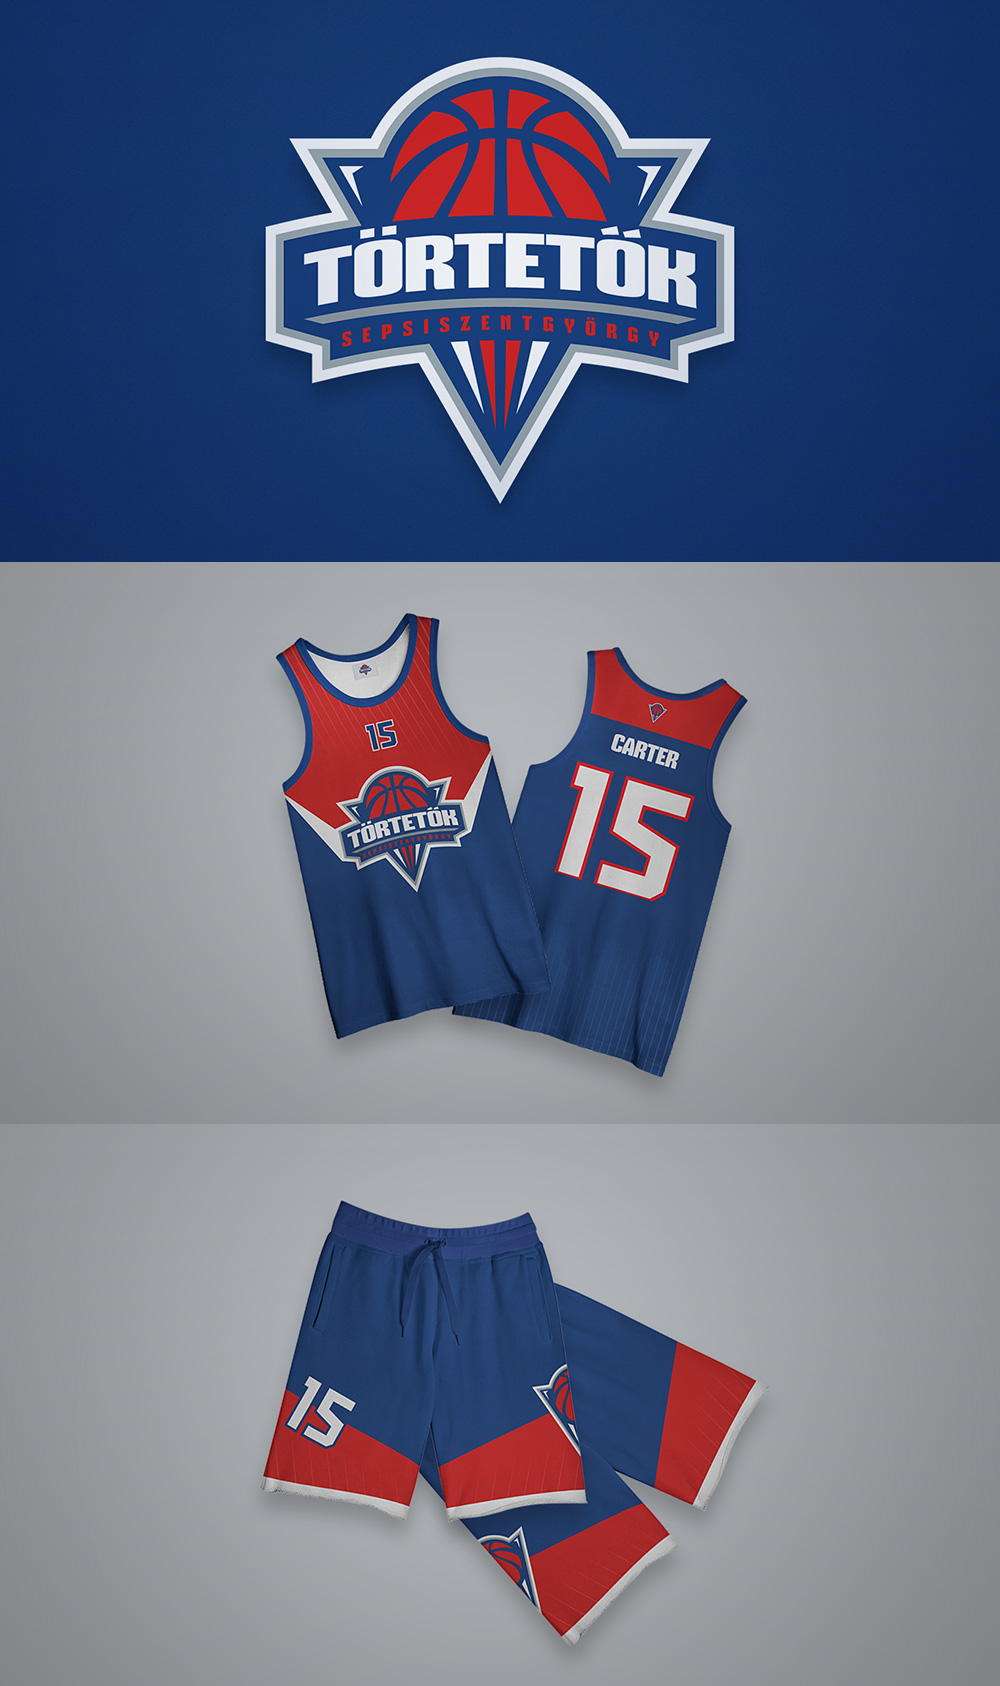 Basketball Team Logo: Tortetok by Hunor Kolozsi